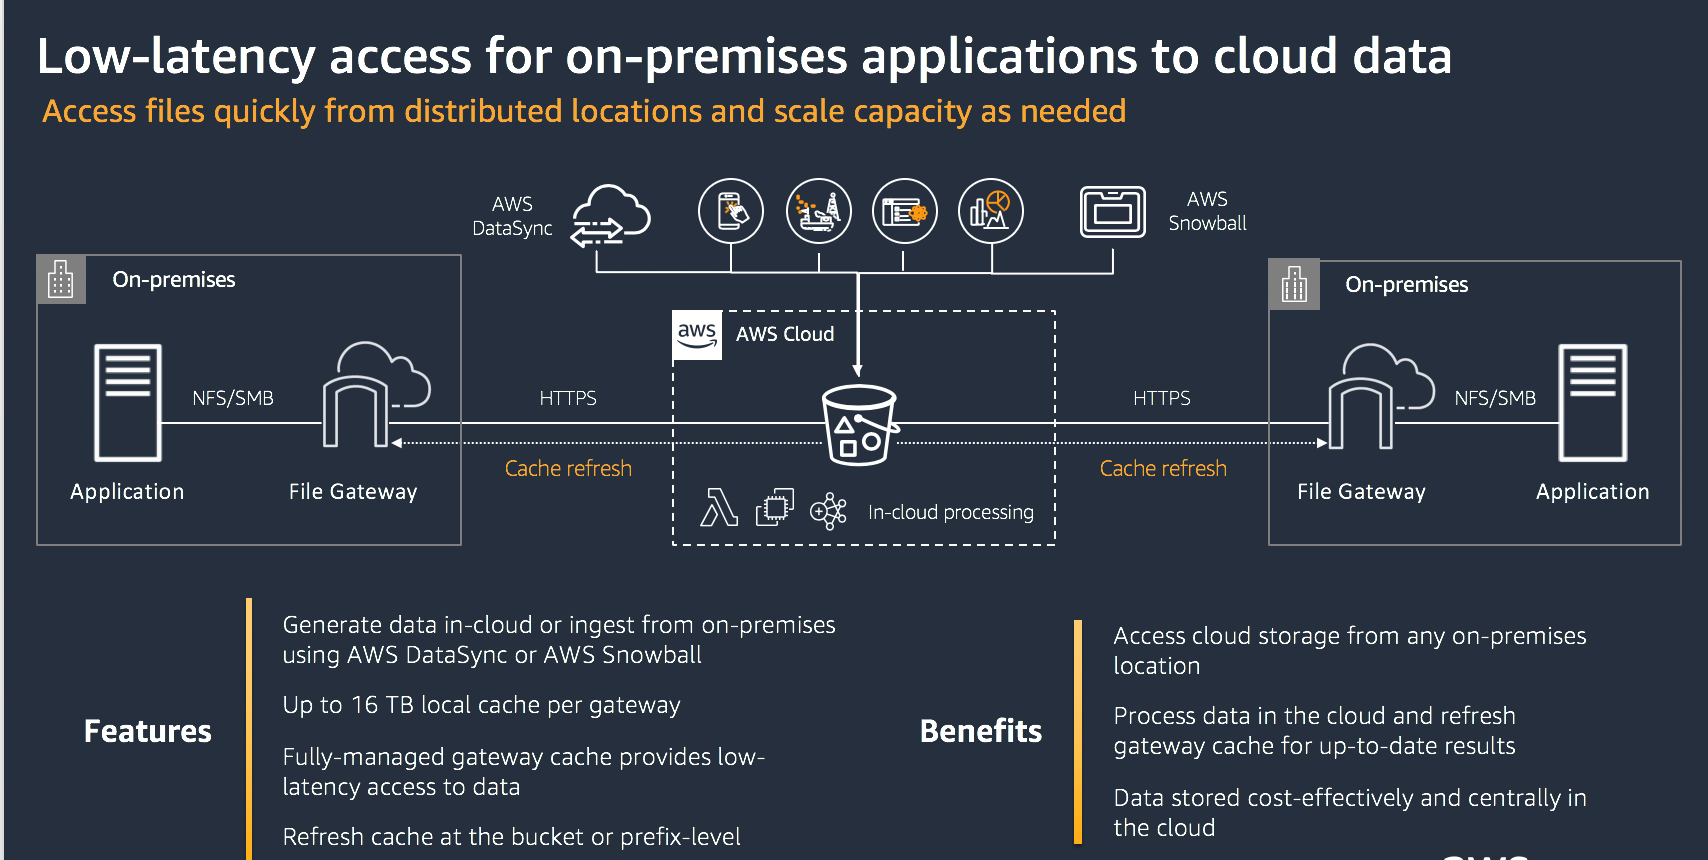 Use case 3- low-latency access for on-premises applications to cloud data